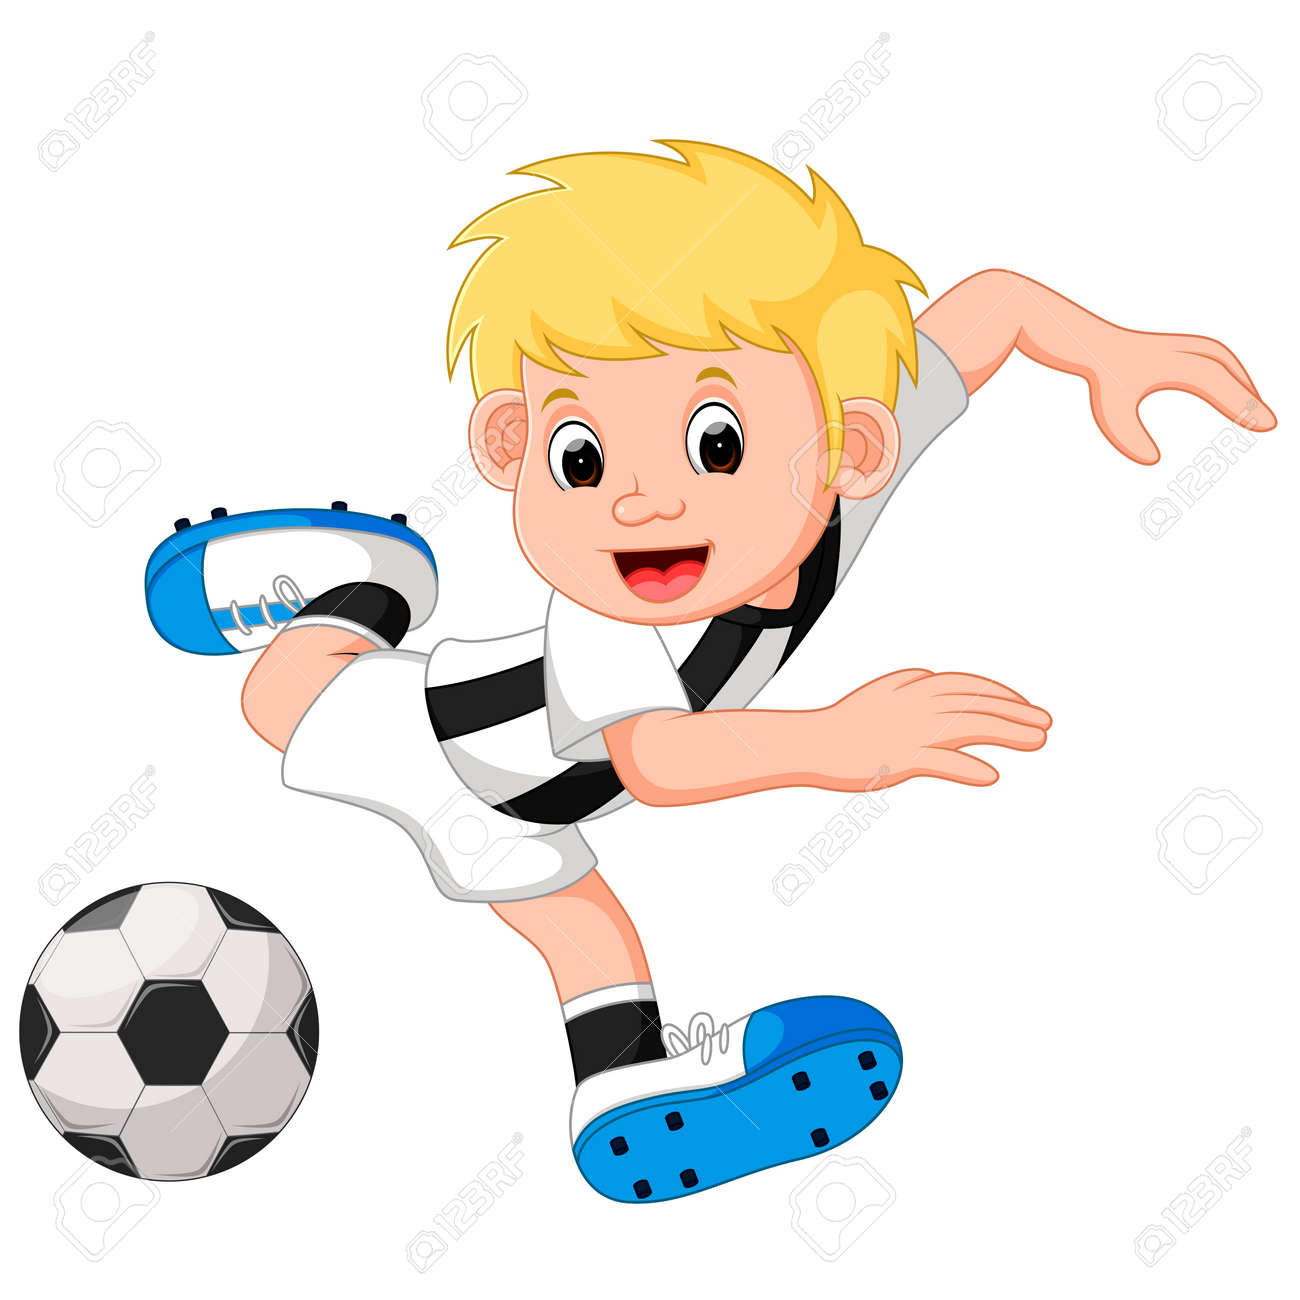 Boy Cartoon Playing Football Stock Photo Picture And Royalty Free Image Image 77463898